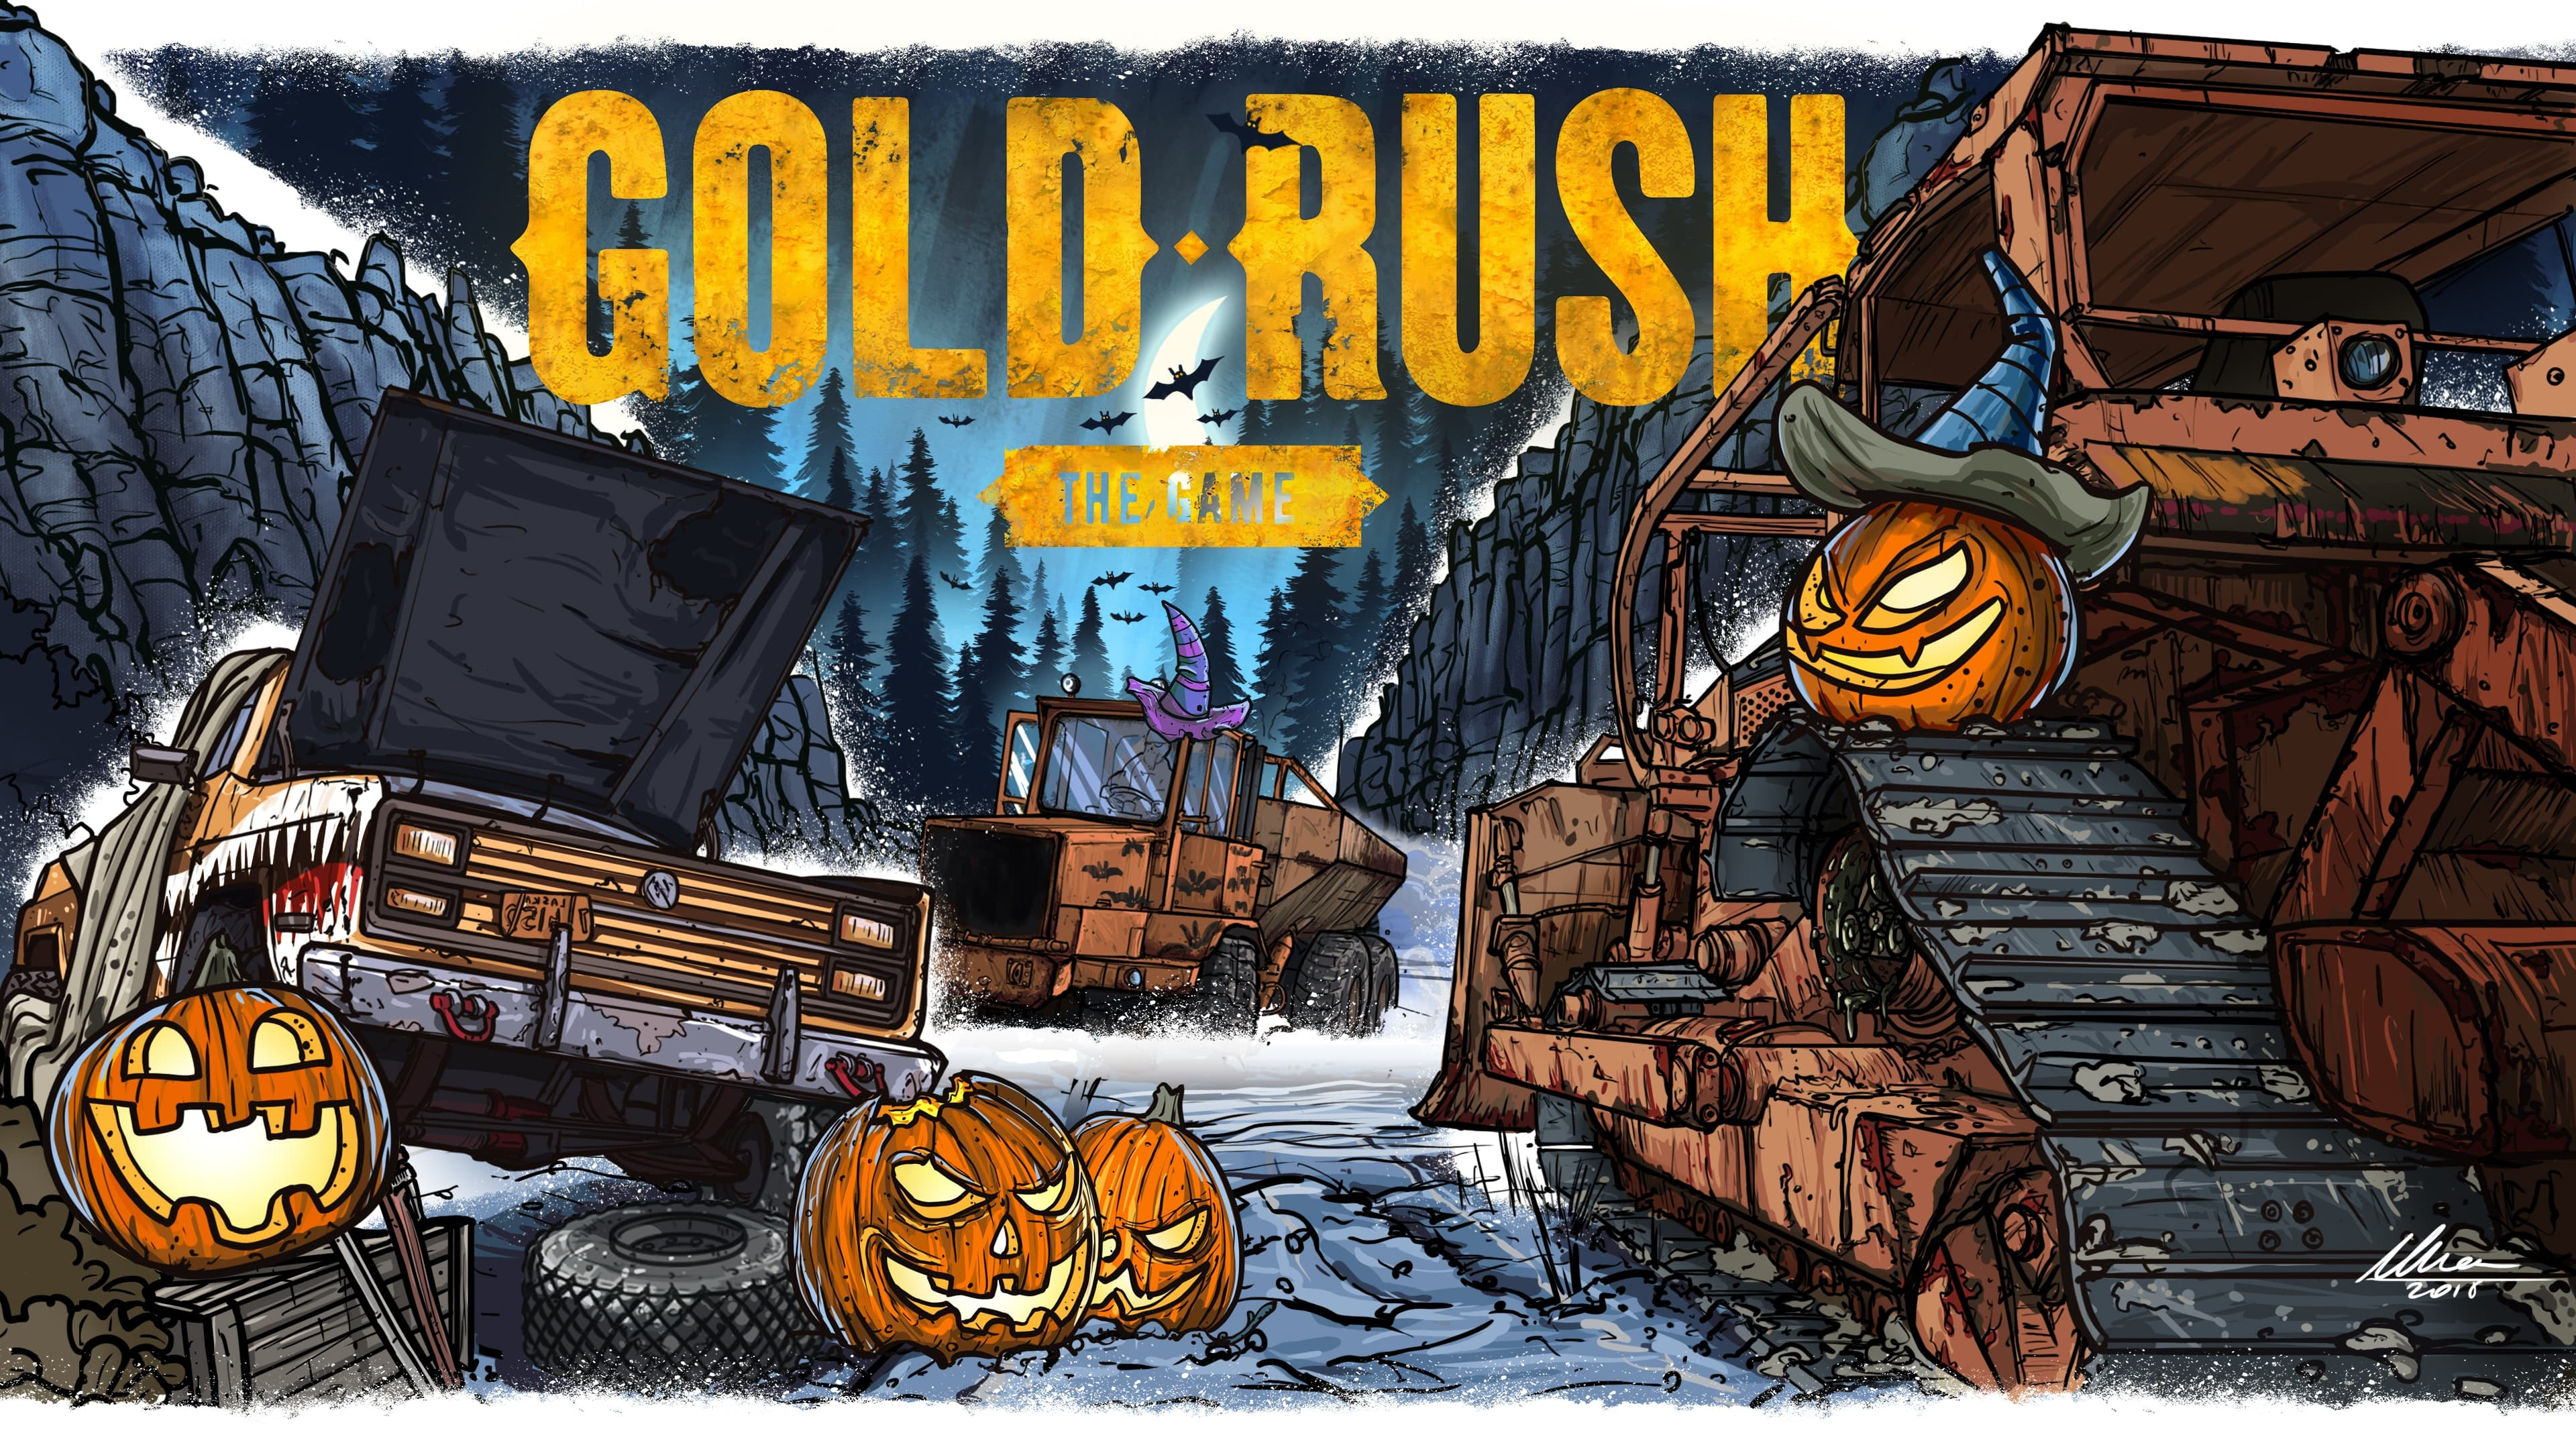 Goldrush The Game At Goldrushthegame Twitter